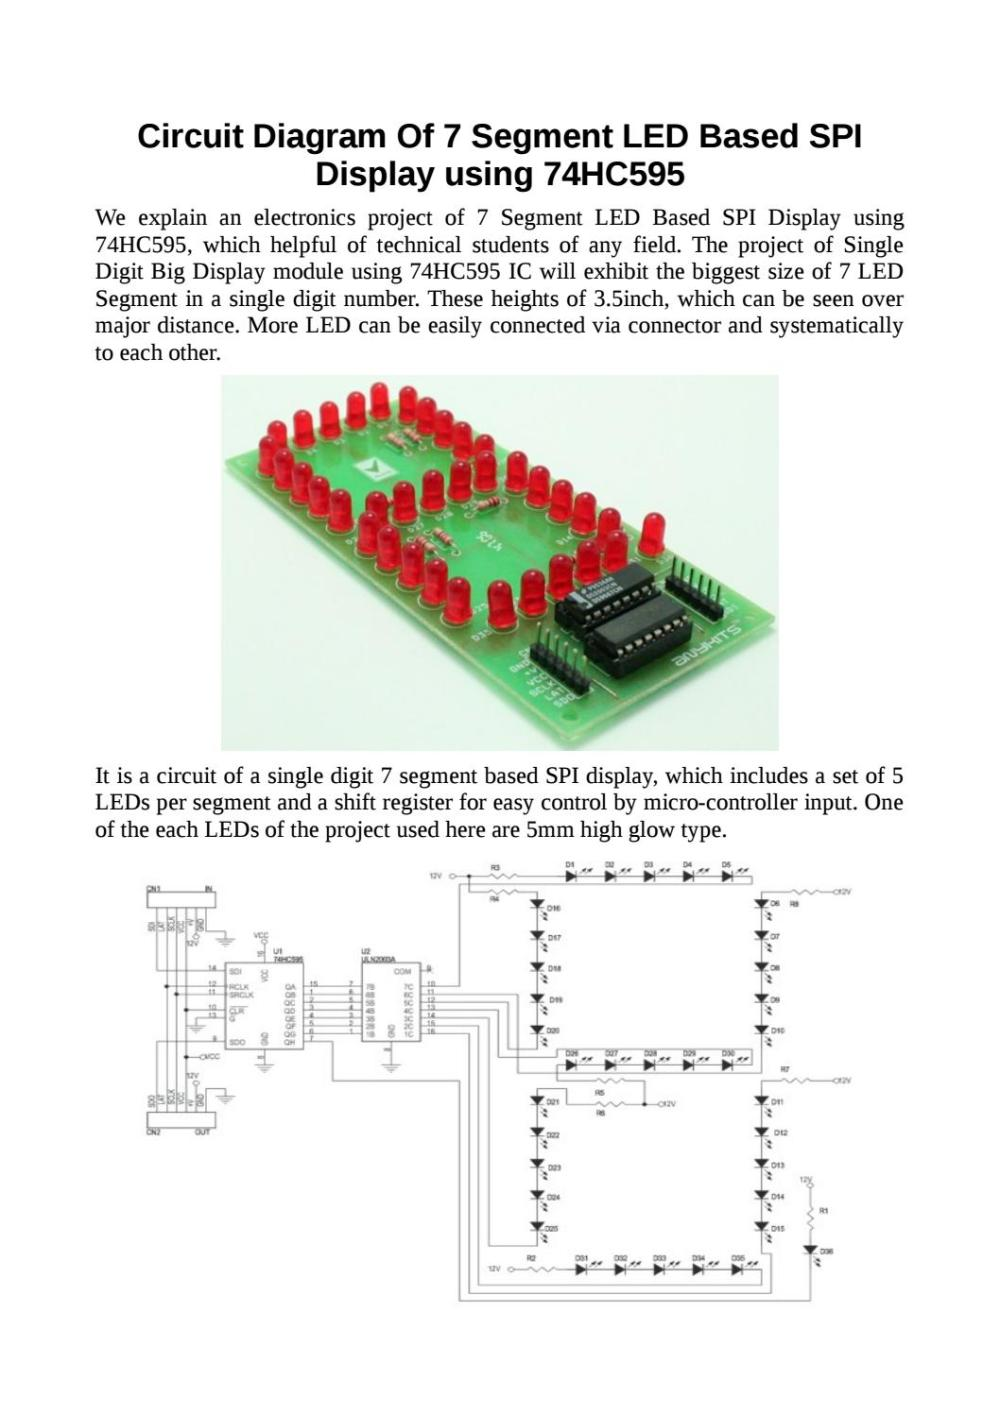 medium resolution of circuit diagram of 7 segment led based spi display using 74hc595 by techieshop issuu